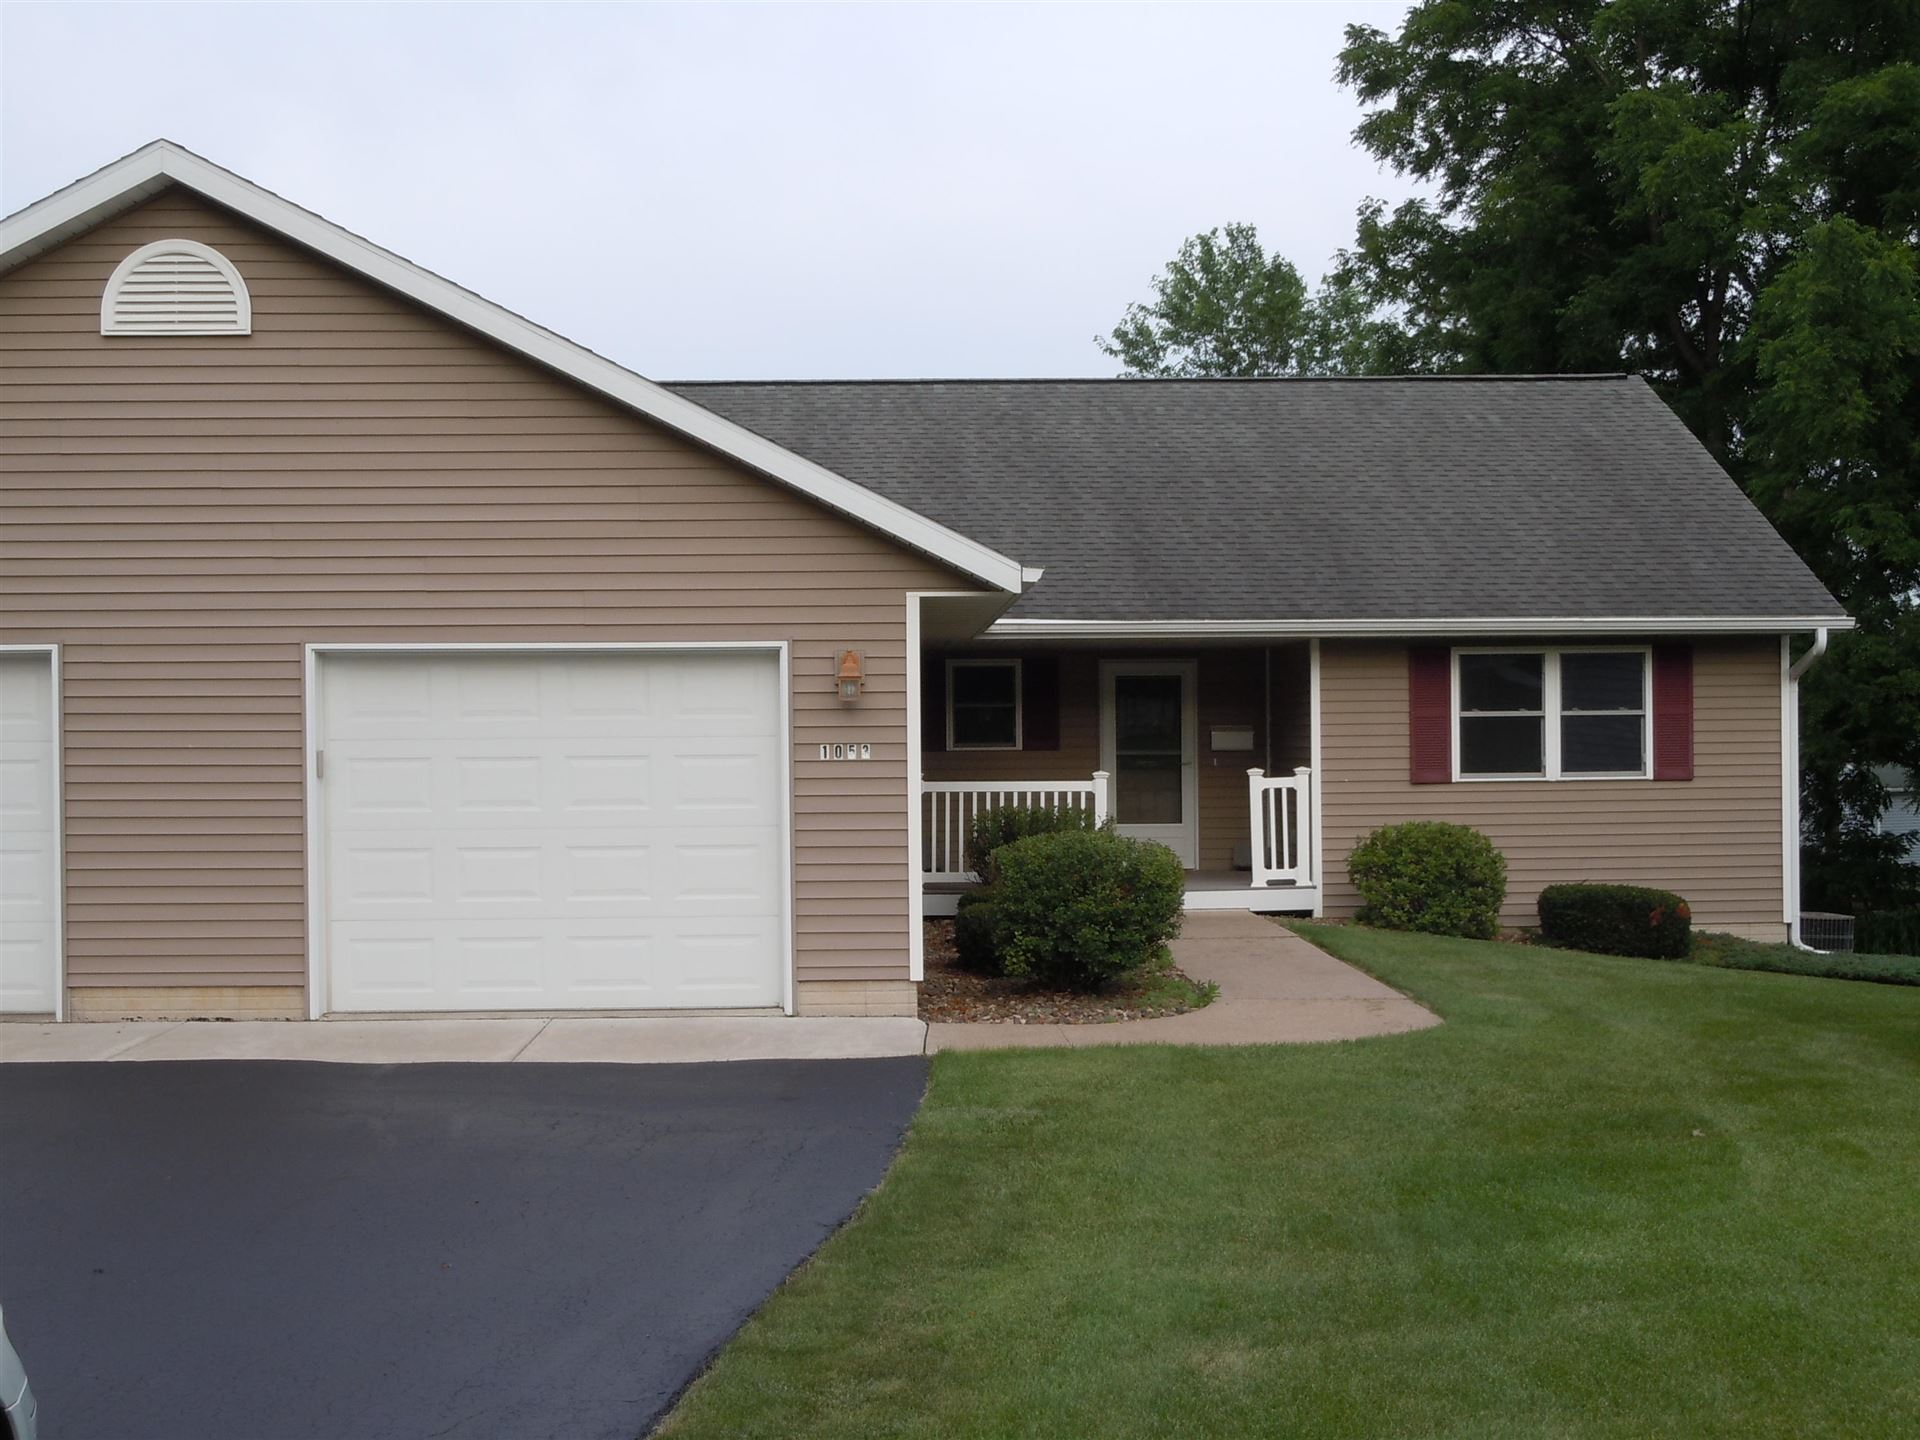 1053 EUCLID AVE, Sparta, WI 54656 - MLS#: 1696457